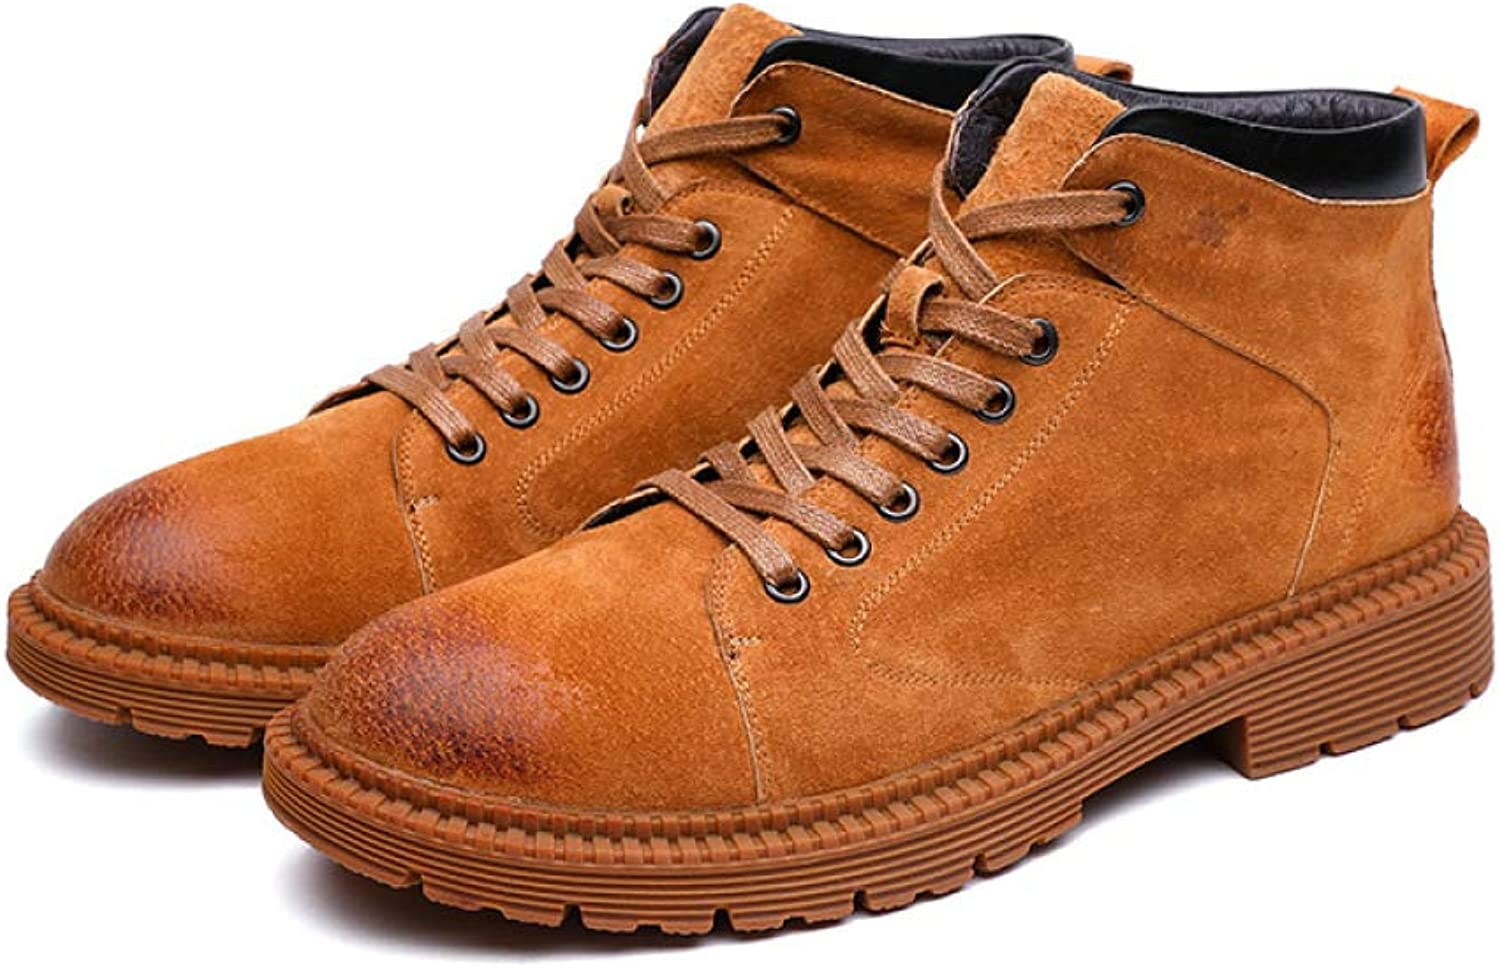 Autumn Martin Boots High Top Boots Round Head Vintage Student Men's Boots